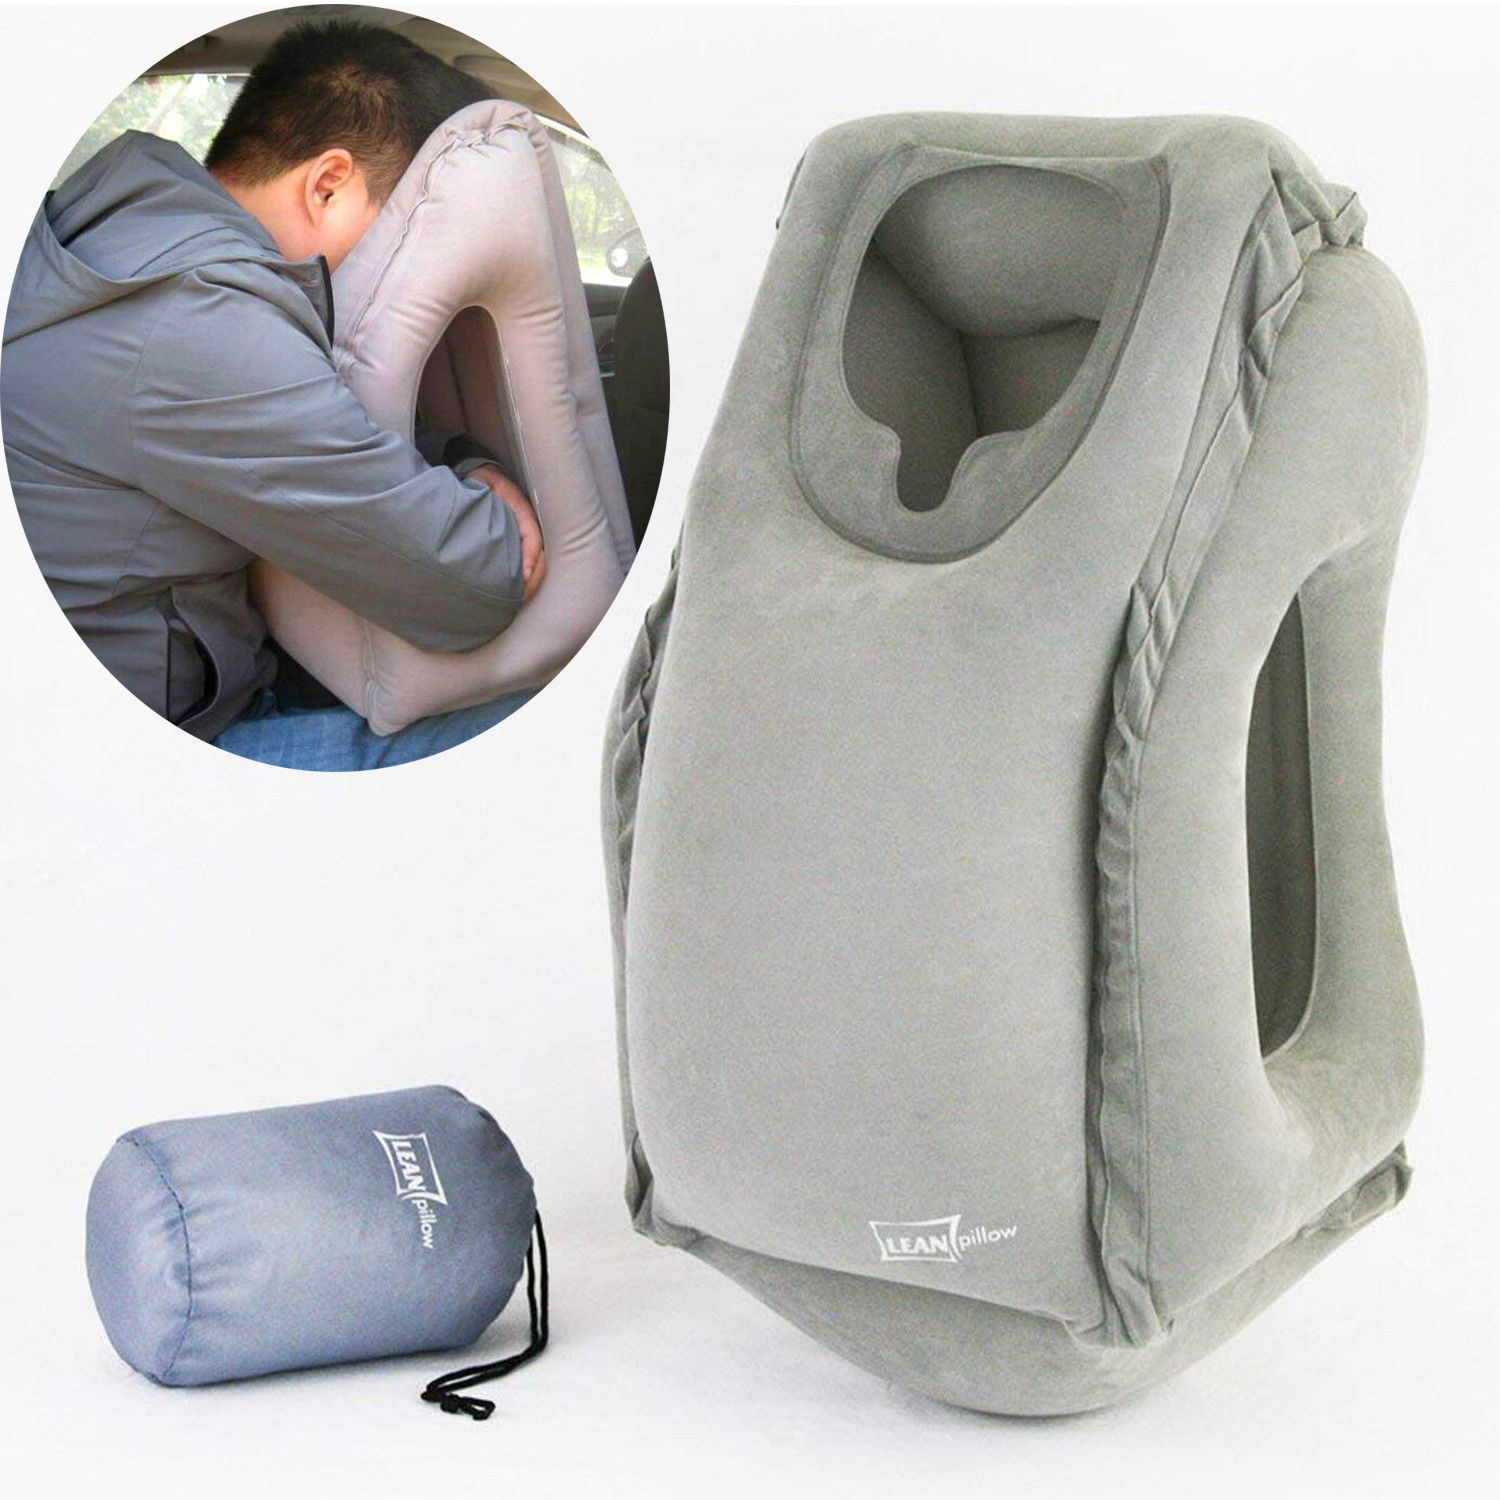 inflatable travel neck pillow for